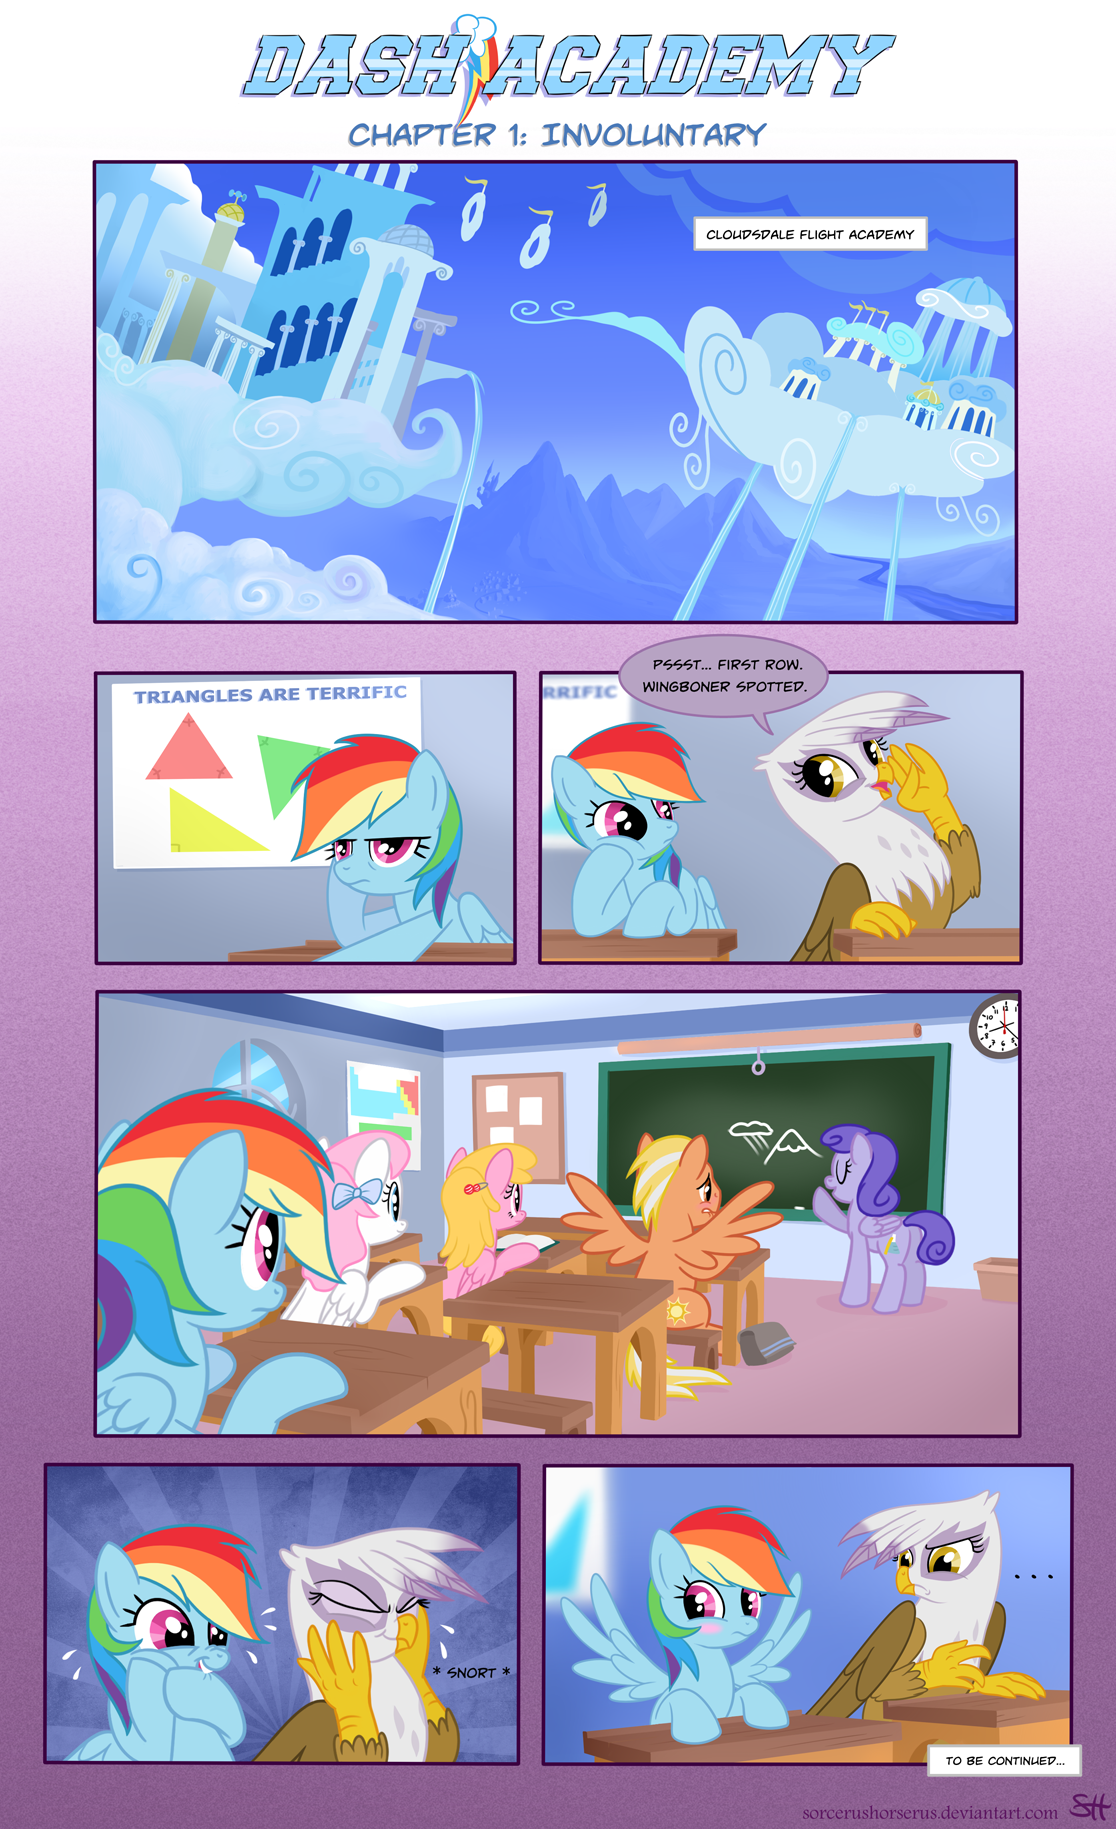 Dash Academy Chapter 1 - Involuntary